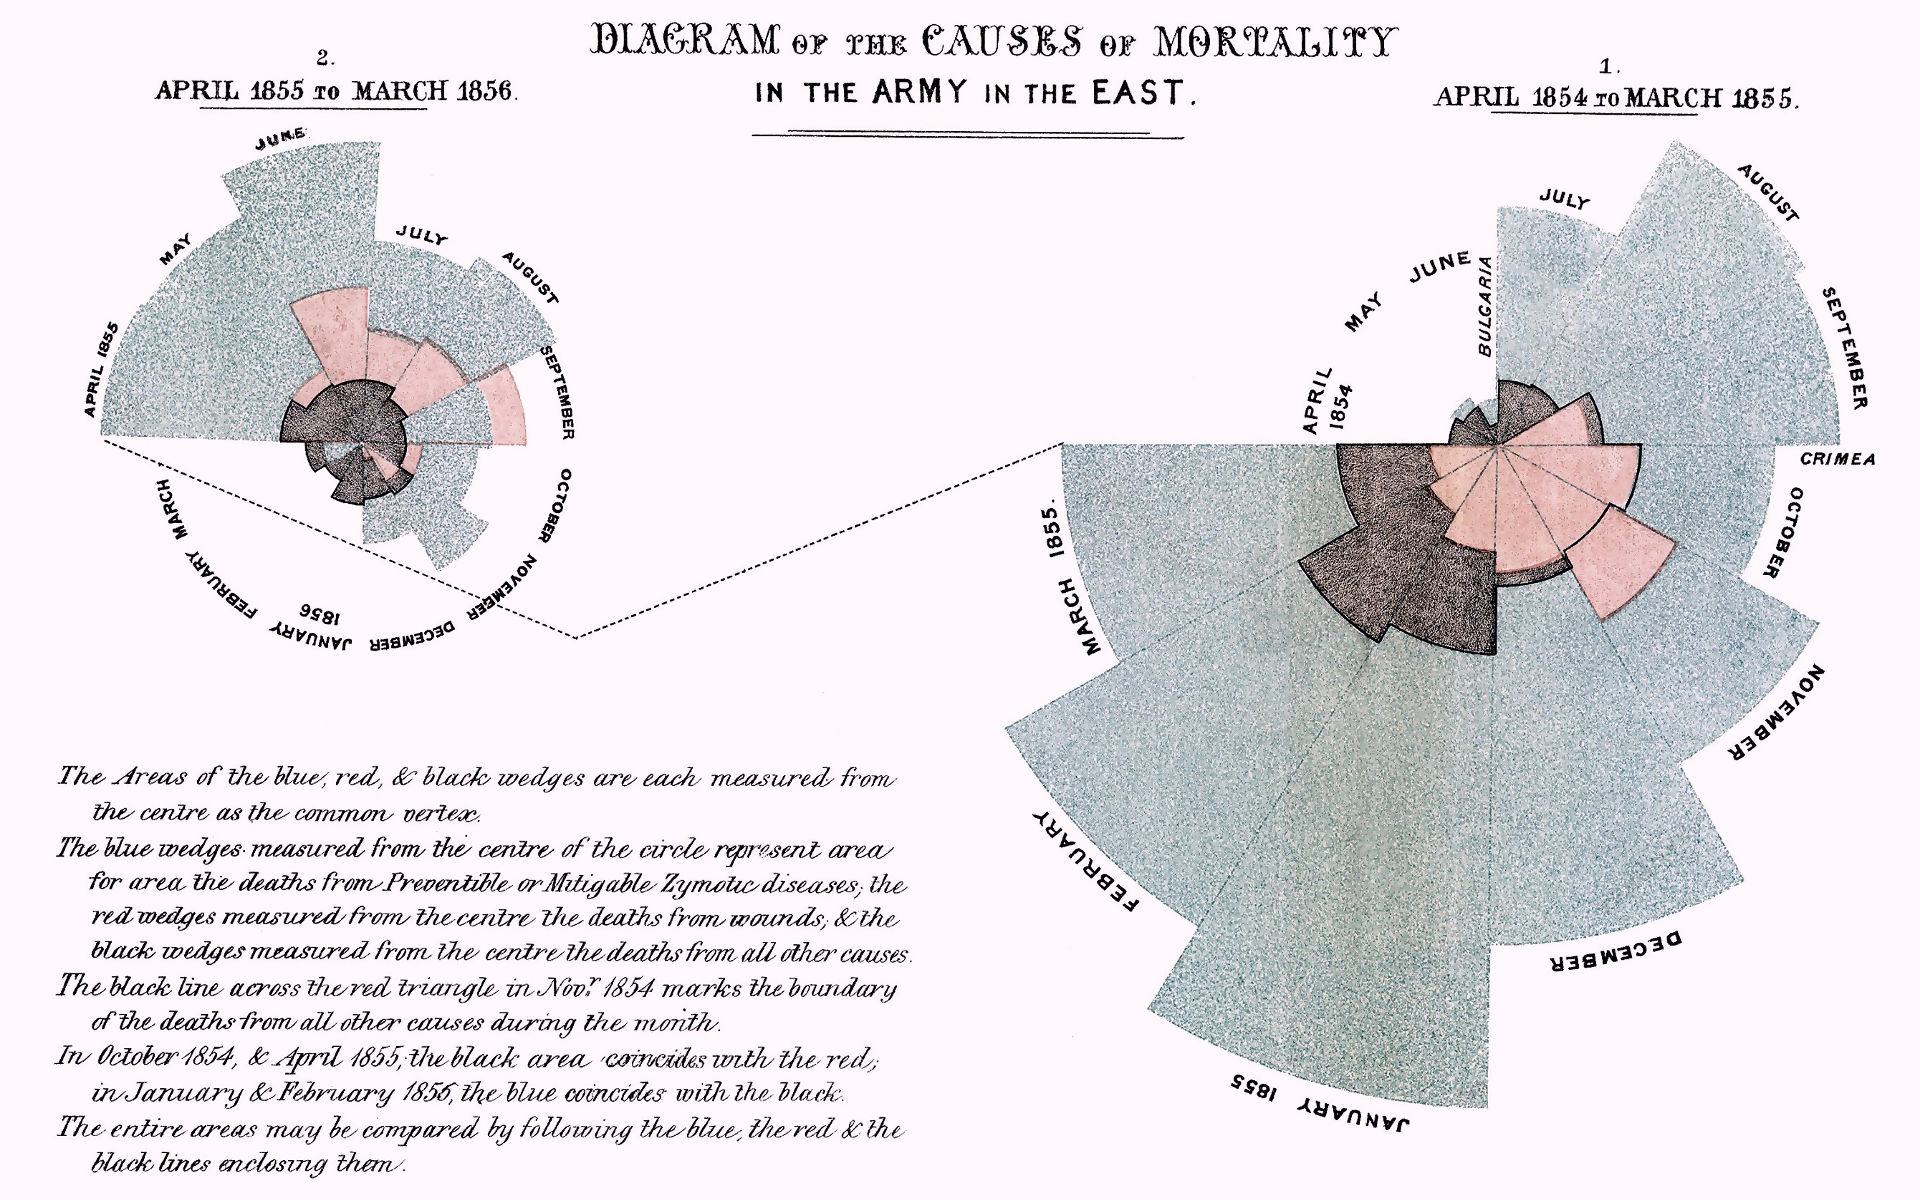 Florence Nightingale: Polar area diagrams of Causes of Mortality